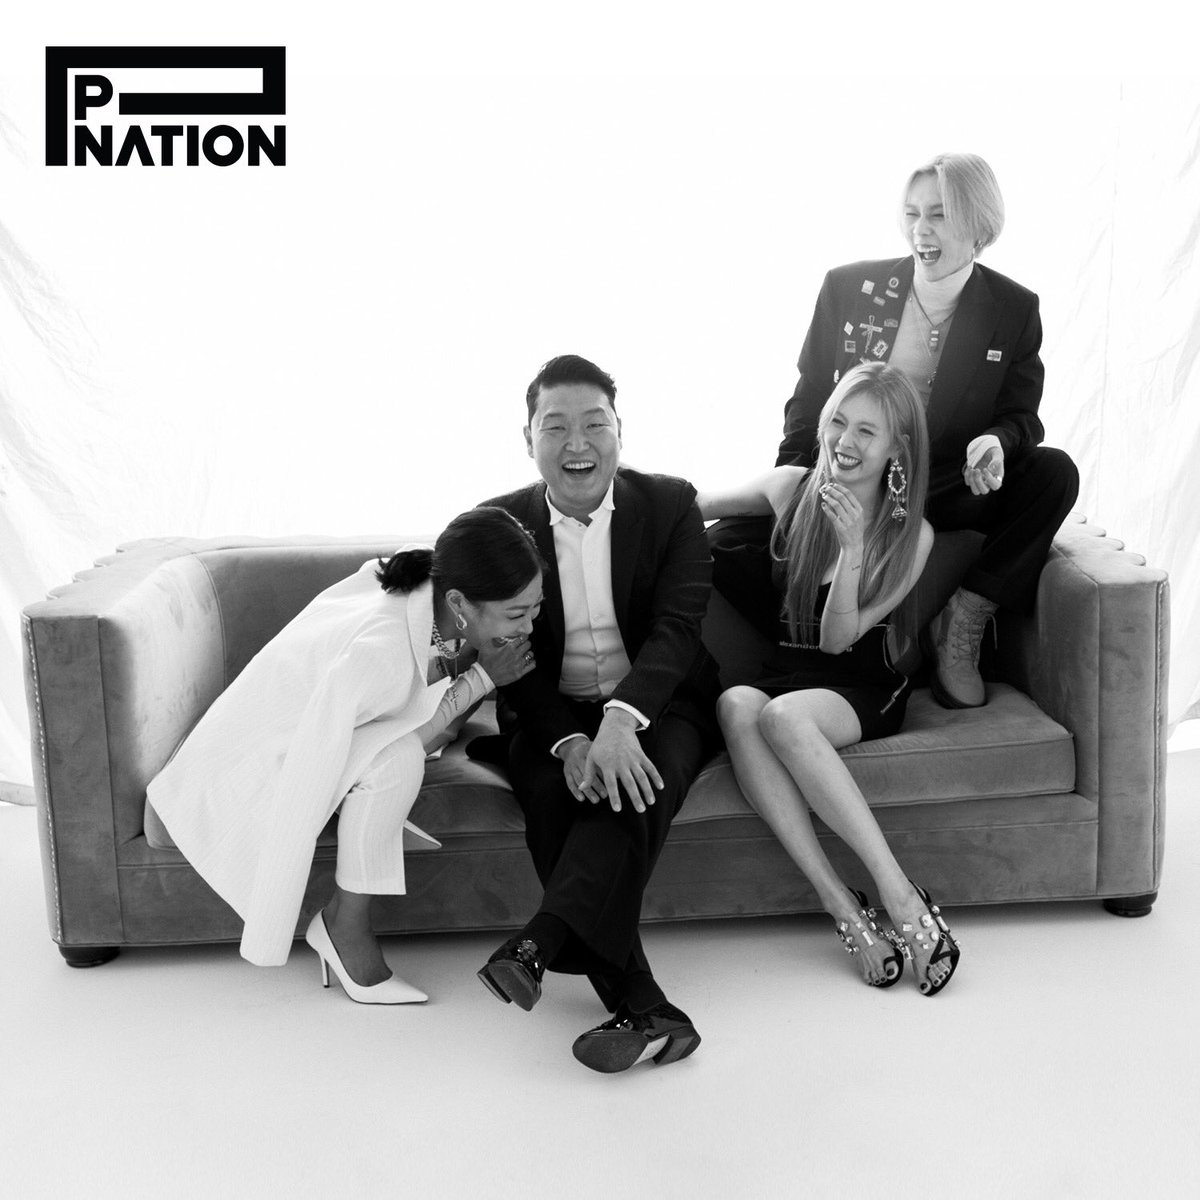 #pnation #powerhouse #laughter #Jessi #PSY #HyunAh #Edawn